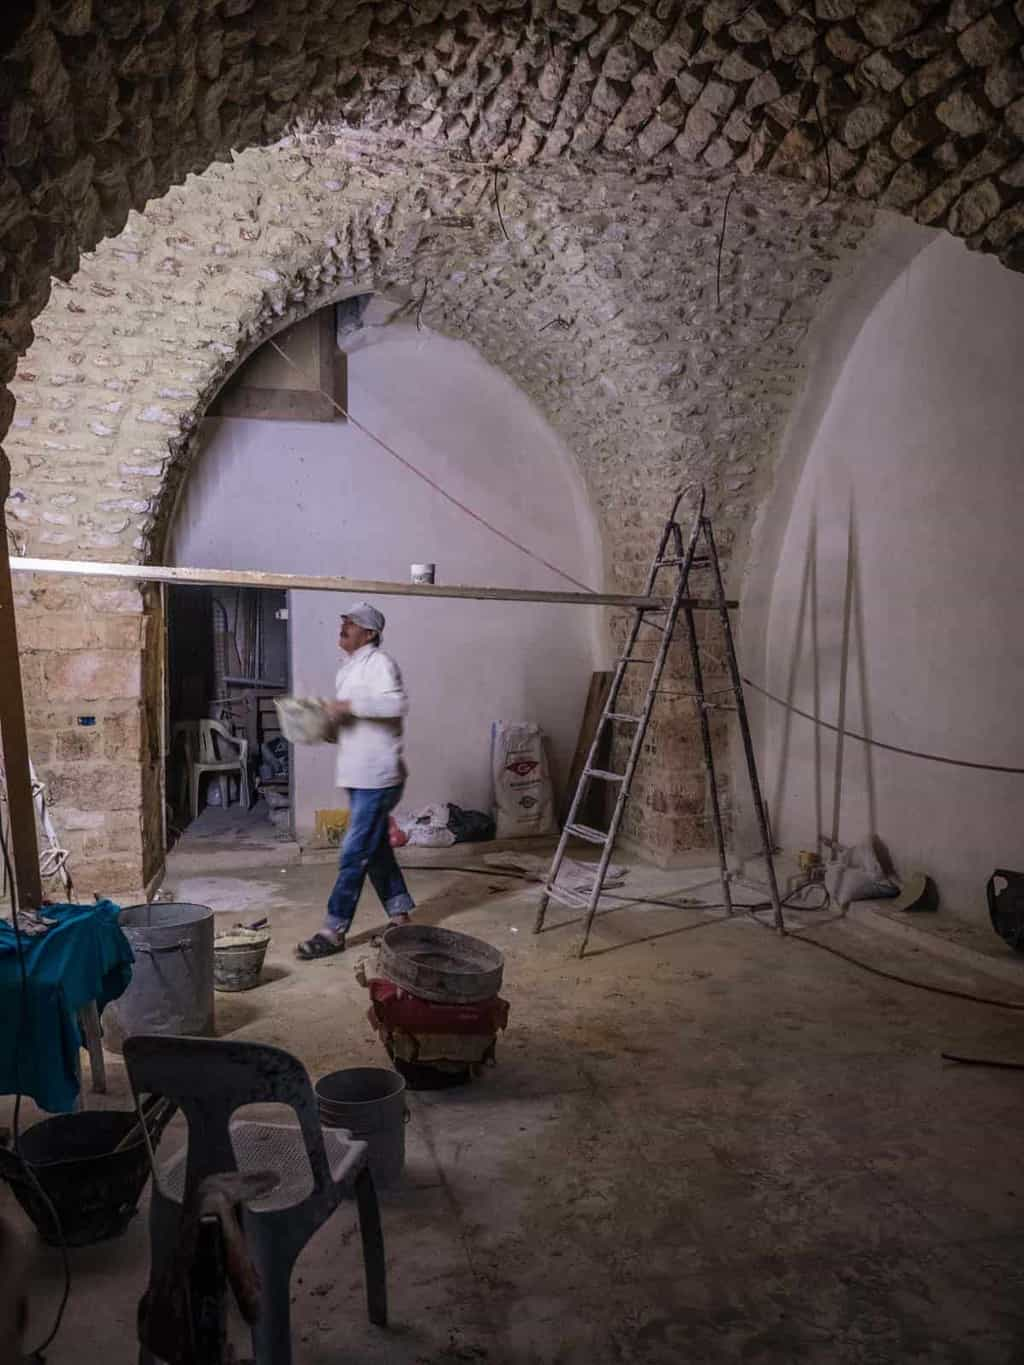 Aleppo Souq getting rebuilt